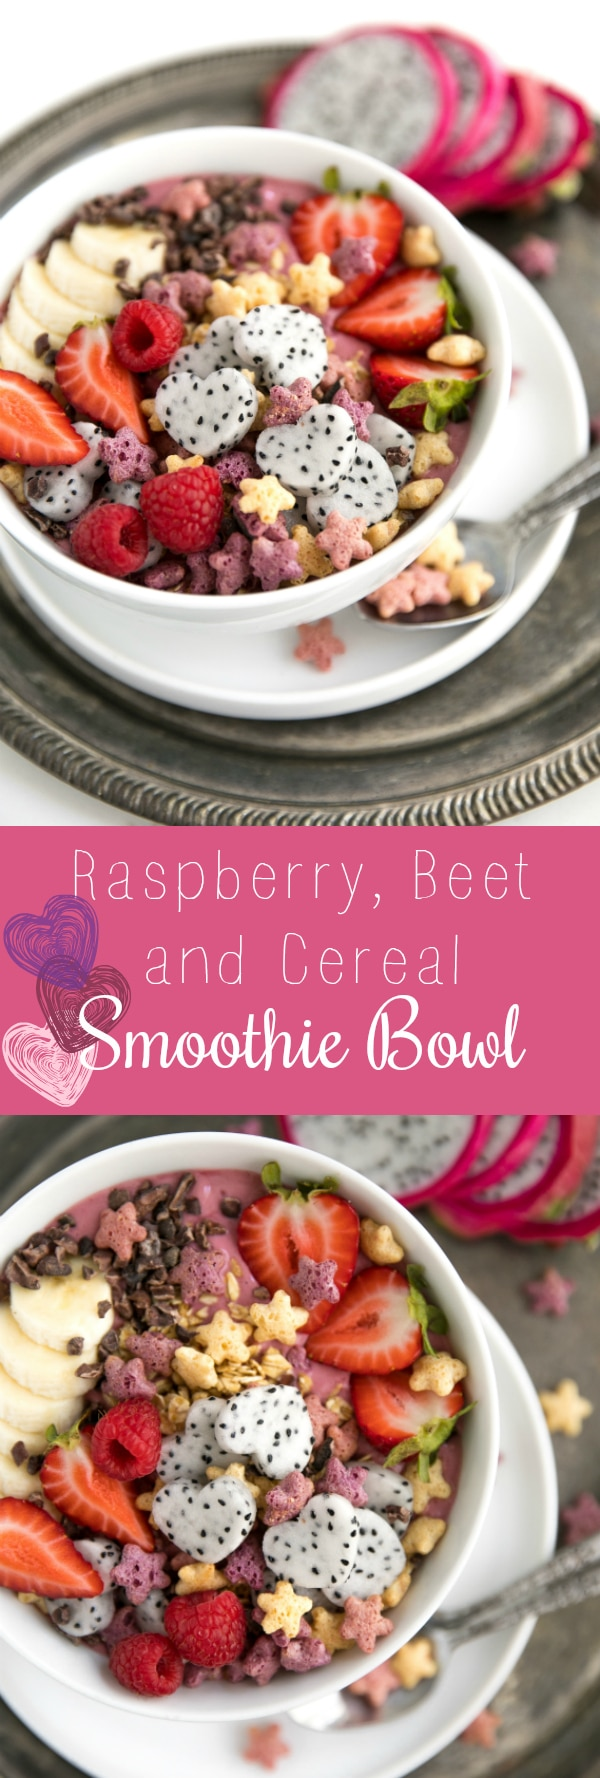 Raspberry Beet and Cereal Smoothie Bowl #beets #smoothiebowl #breakfast #healthy #cereal #easyrecipe via @theforkedspoon